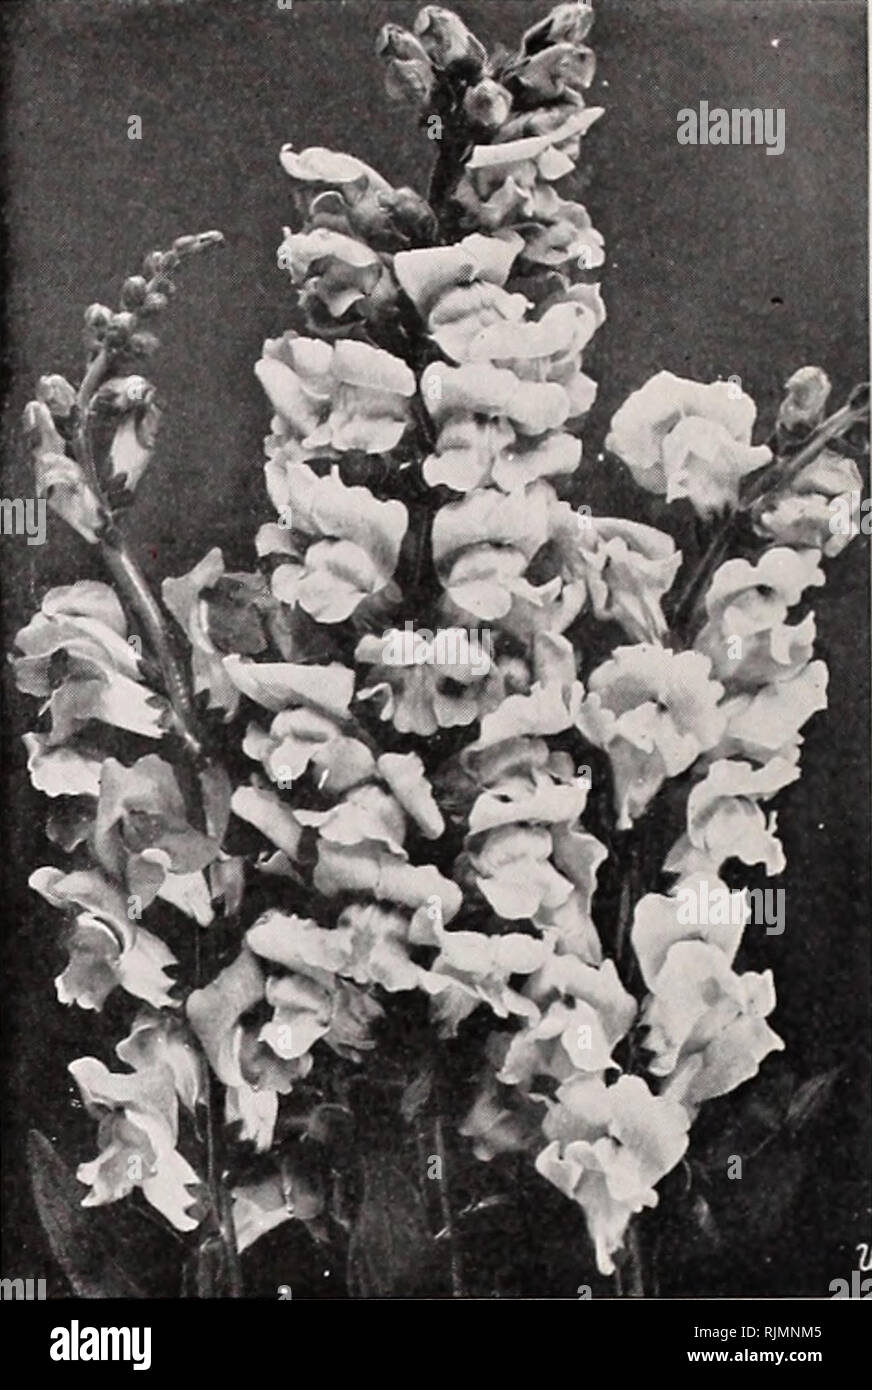 . Beckert's bulbs. Nurseries (Horticulture) Pennsylvania Pittsburgh Catalogs; Nursery stock Pennsylvania Pittsburgh Catalogs; Vegetables Seeds Pennsylvania Pittsburgh Catalogs; Flowers Seeds Pennsylvania Pittsburgh Catalogs; Bulbs (Plants) Pennsylvania Pittsburgh Catalogs. Flower Seeds for the Greenhouse Antirrhinum (Snapdragon) hhp Now grown as extensively under glass as in the garden. Snapdragons bloom to perfection indoors and require no more care than Geraniums. With only ordinary treatment and temperature, they will flower in from four to six months from the time the seed is sown. About 8 - Stock Image